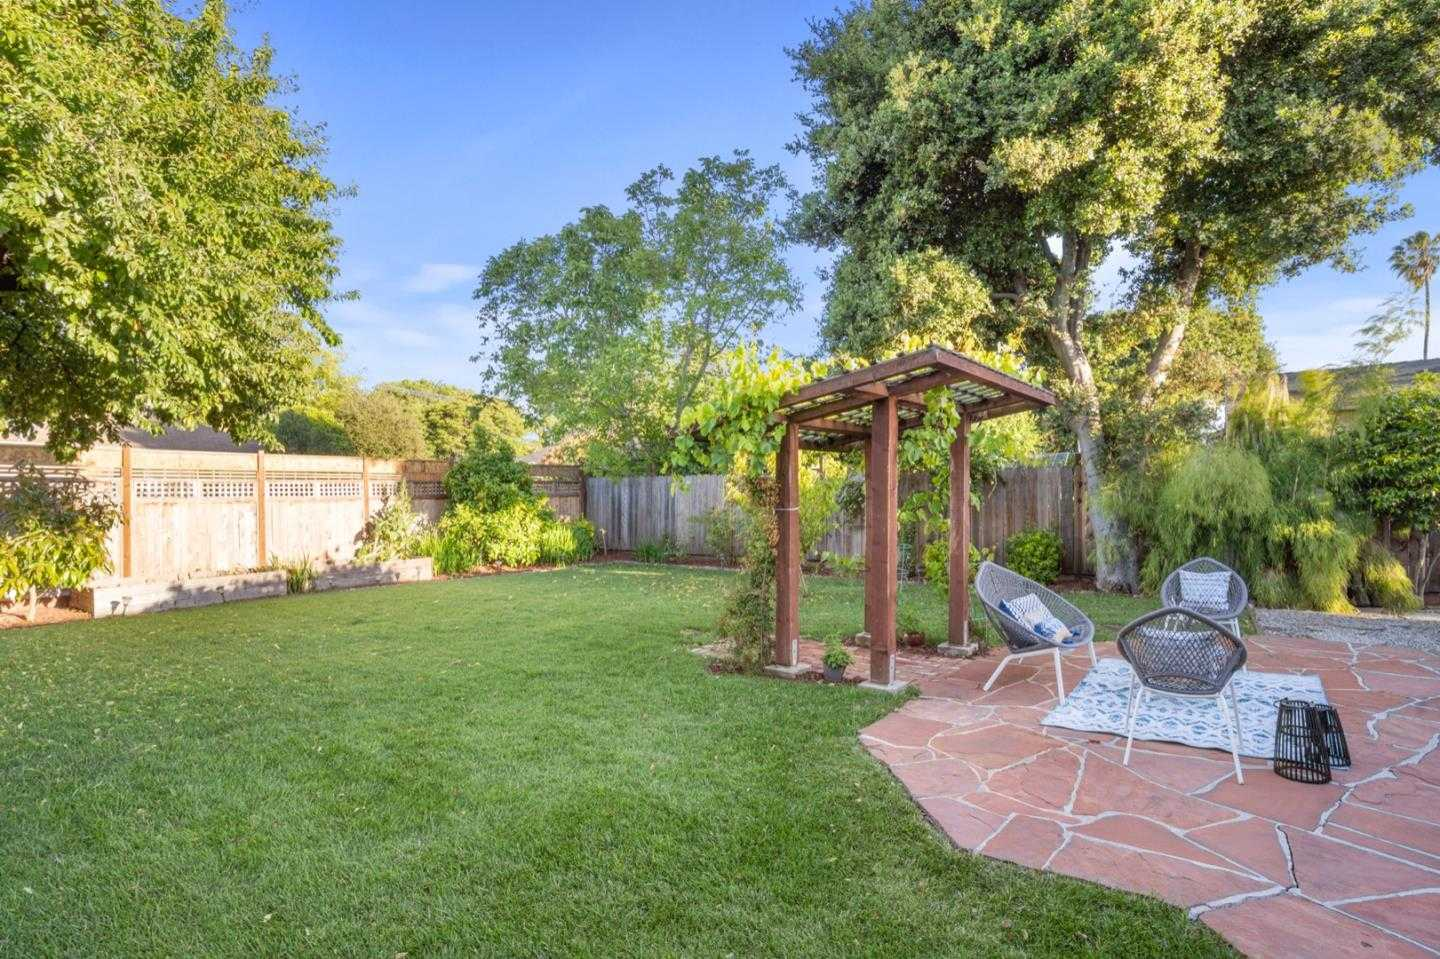 $1,375,000 - 2Br/2Ba -  for Sale in Menlo Park